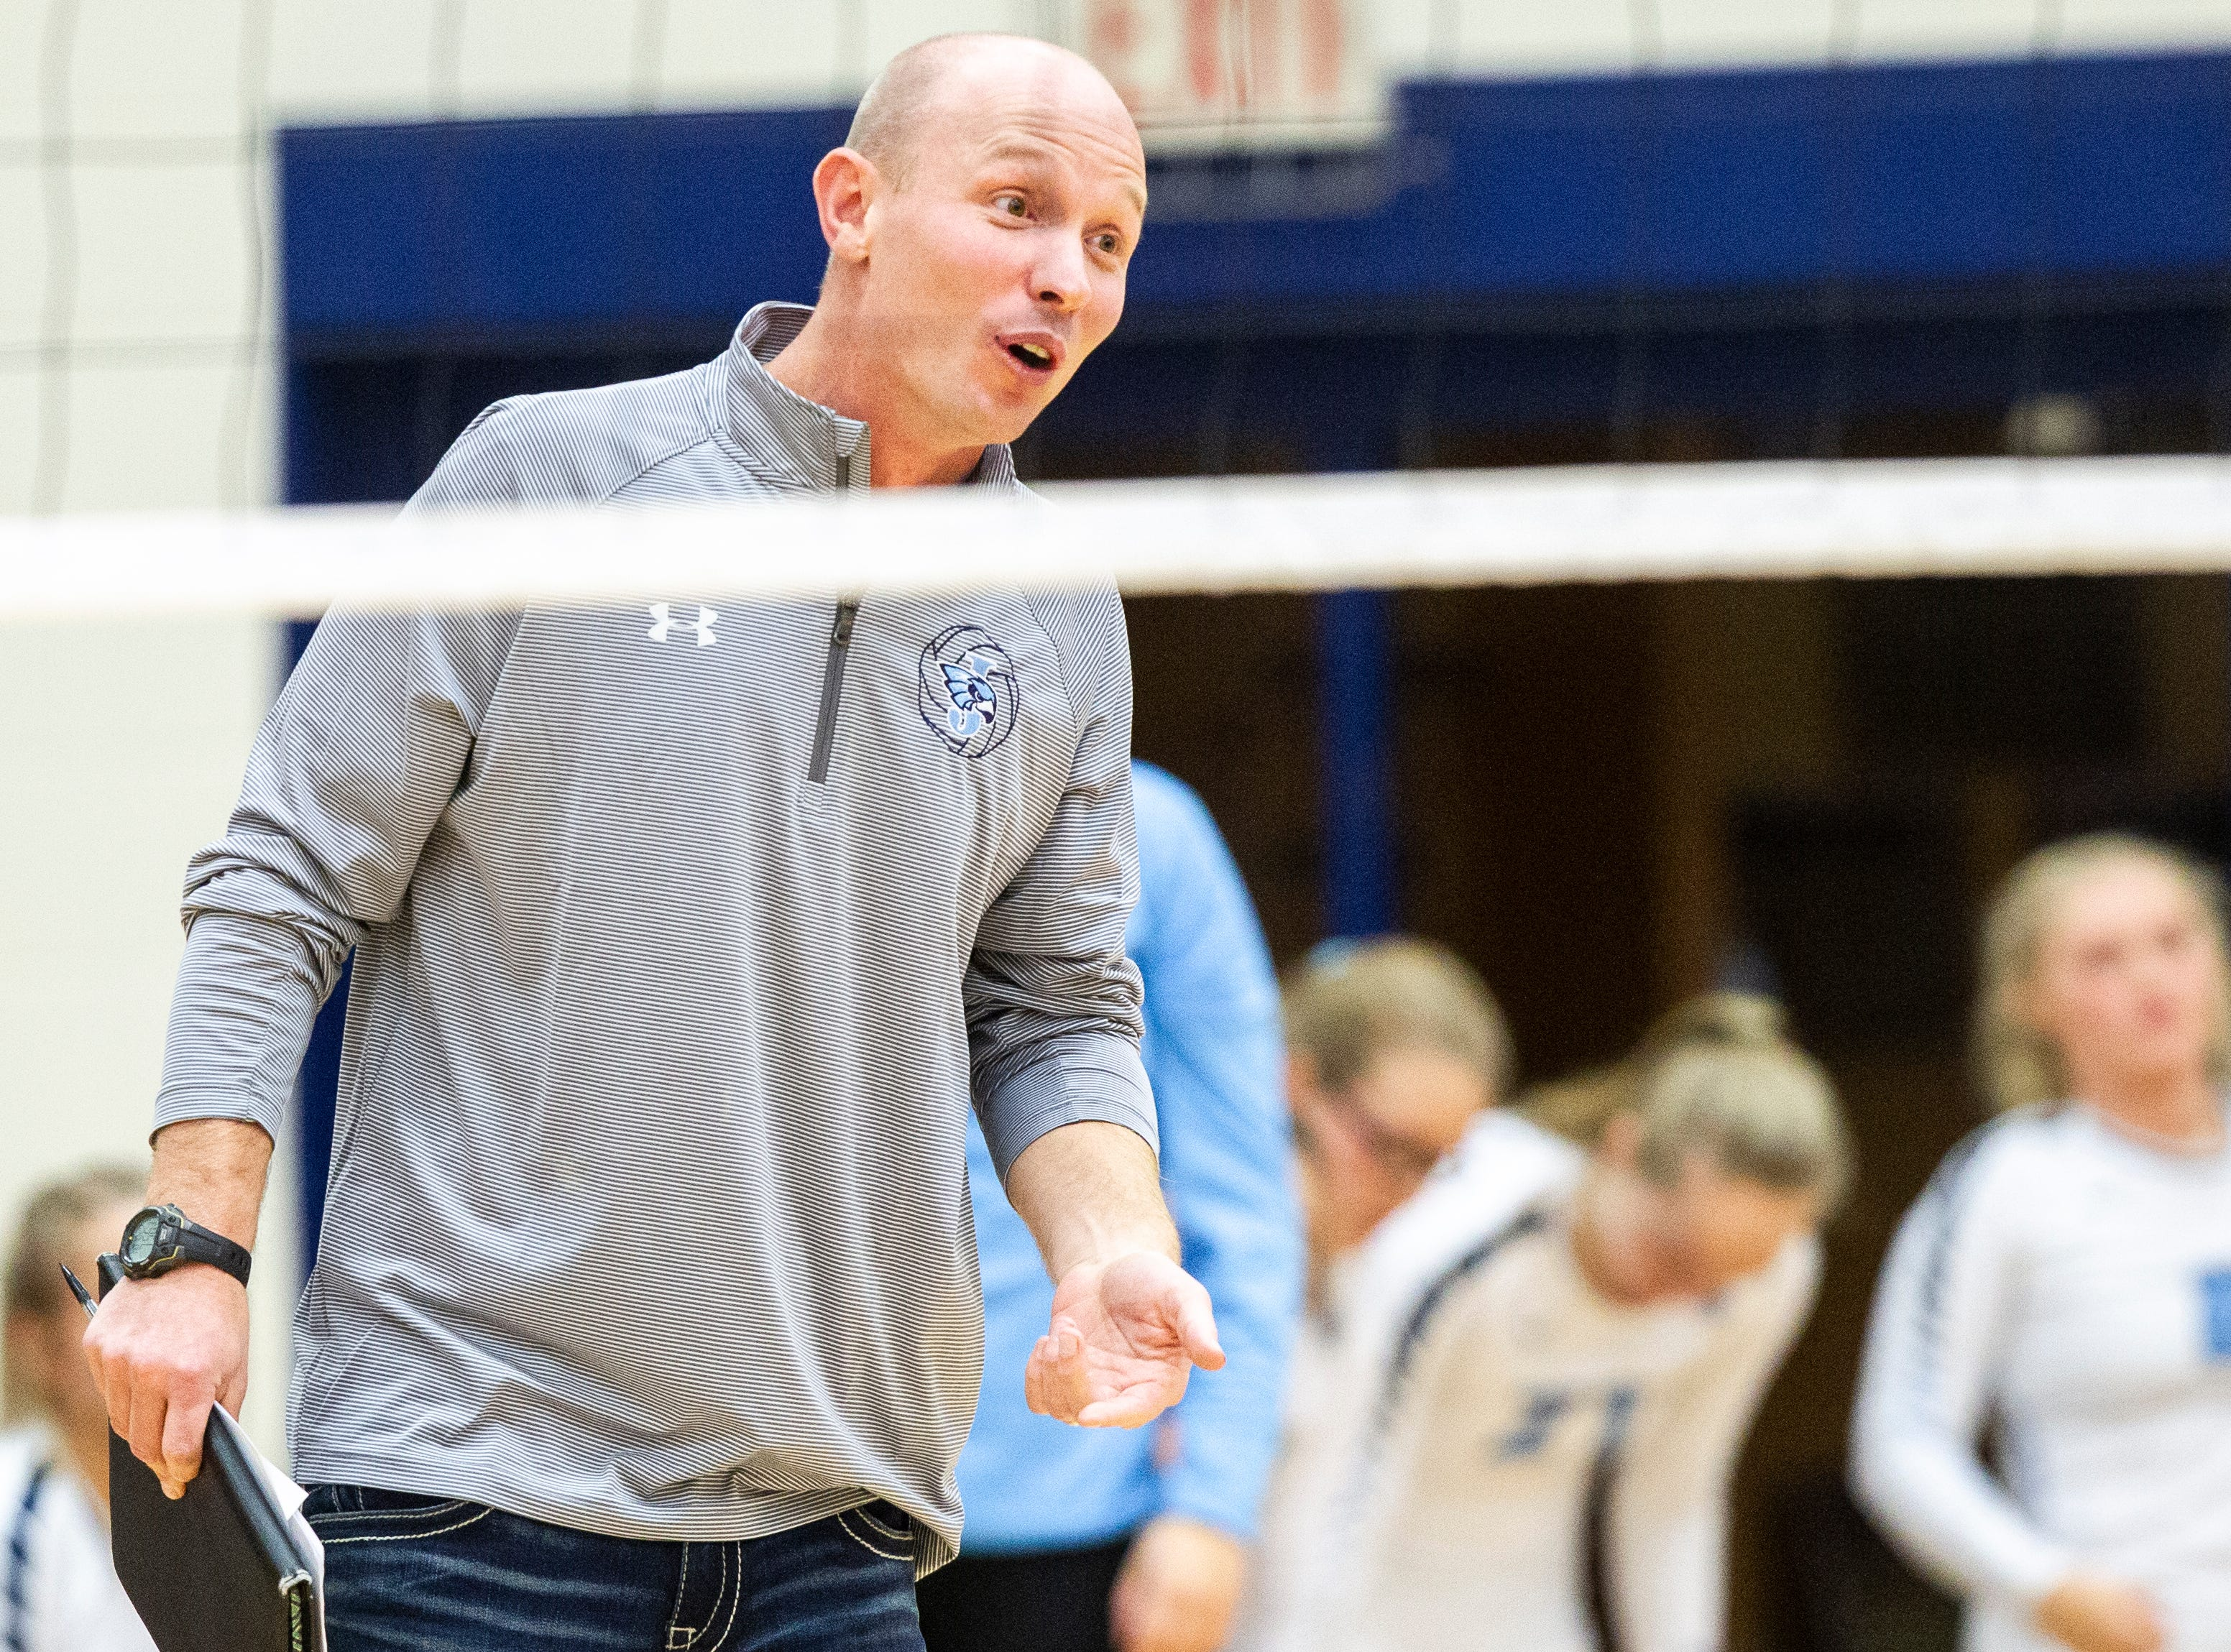 Cedar Rapids Jefferson volleyball head coach Will Norton calls out to players during a Class 5A volleyball regional final game on Monday, Oct. 29, 2018, at Jefferson High School in Cedar Rapids.